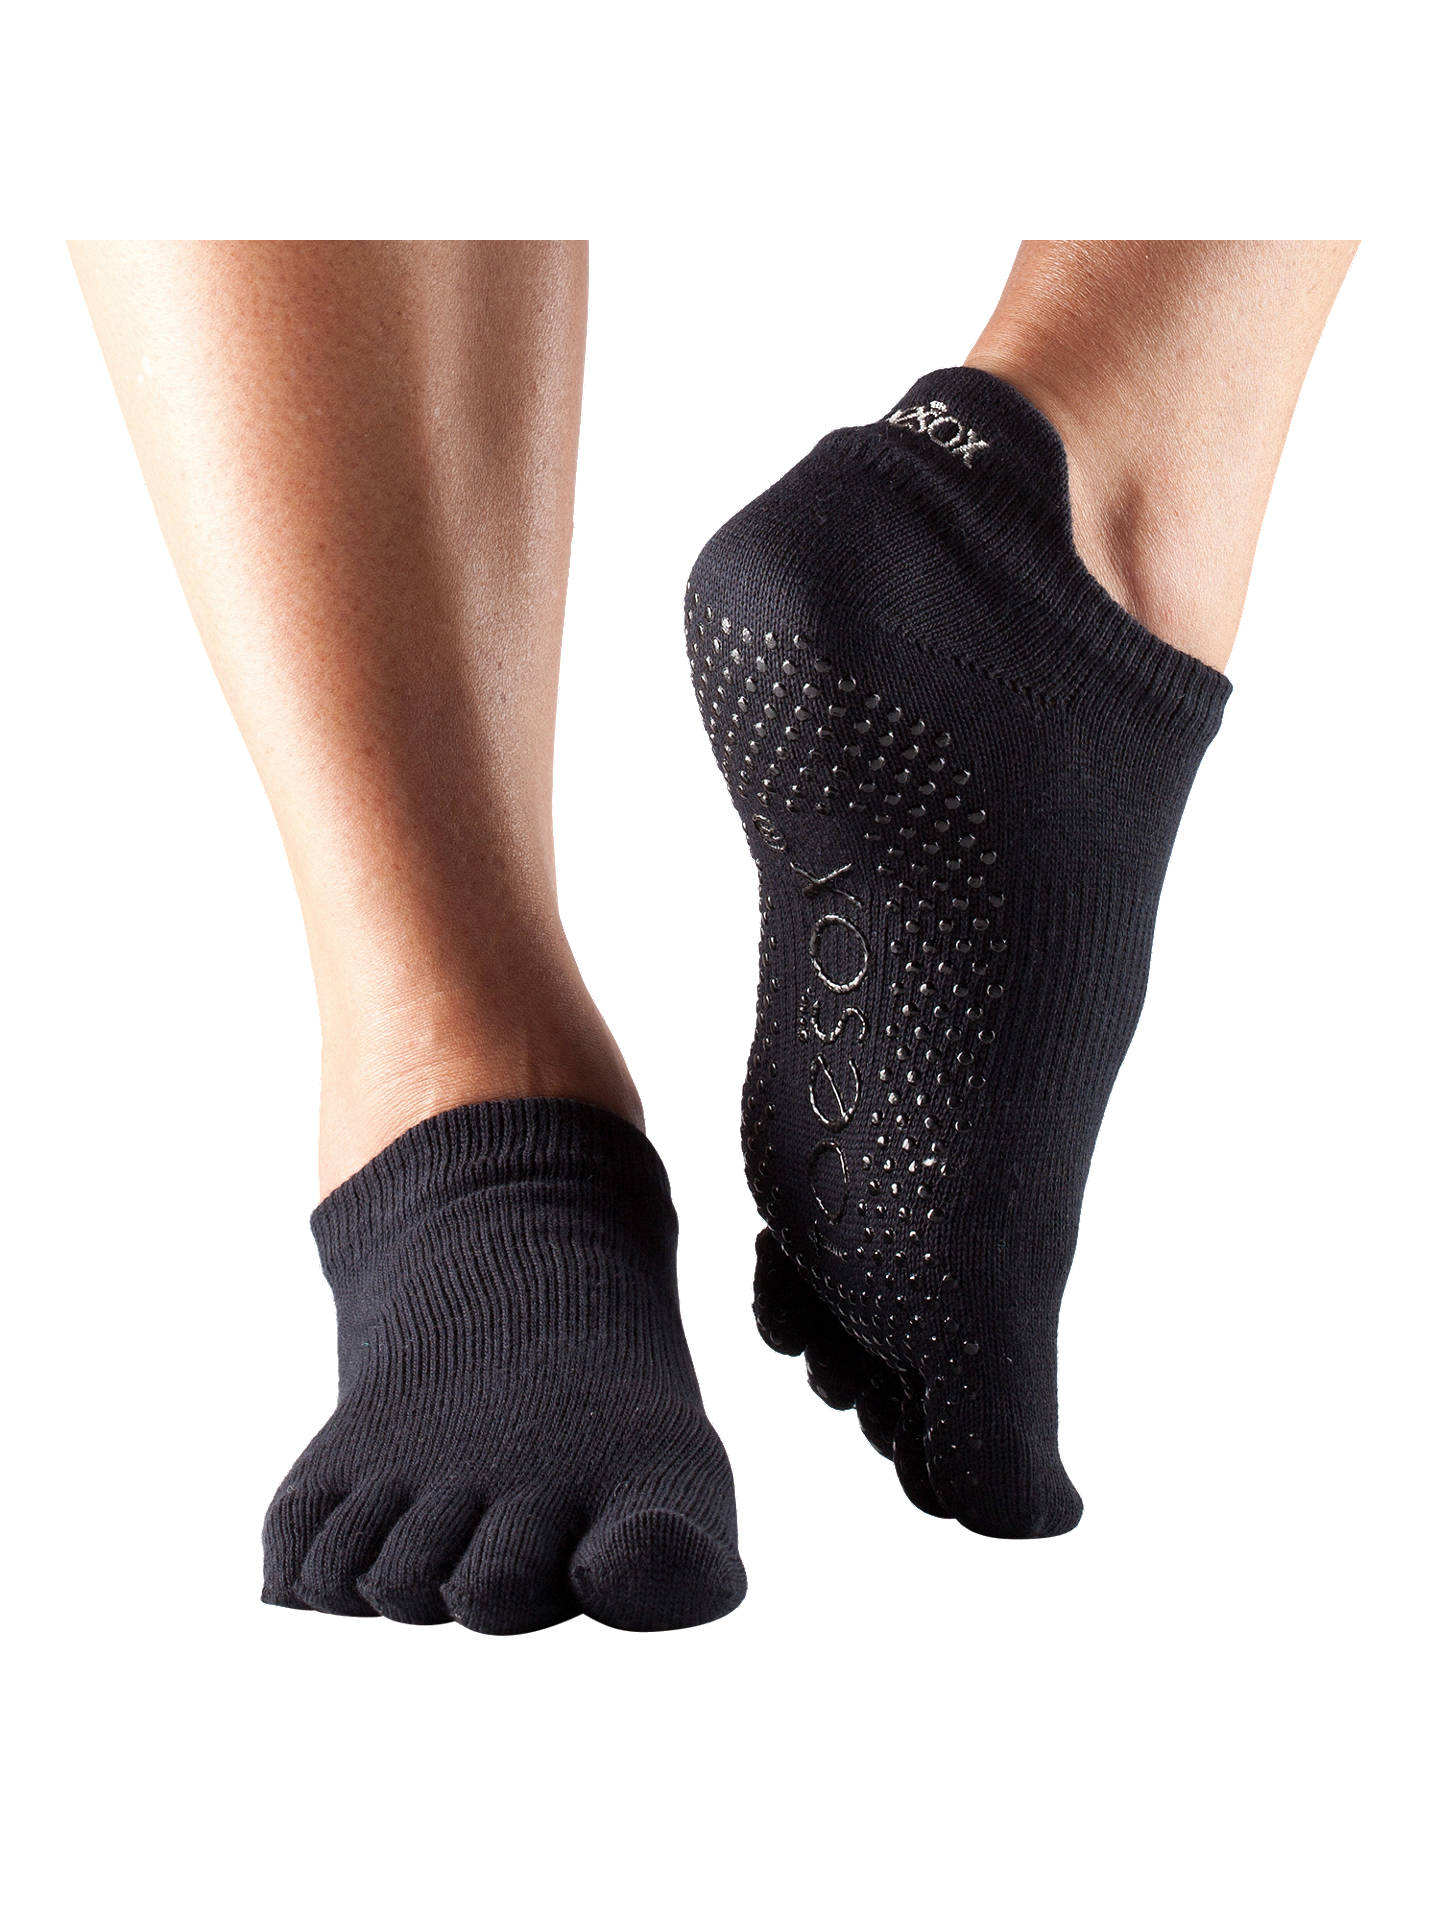 6e6a437935f8 Buy Mad ToeSox Full Toe Low Rise Grip Socks